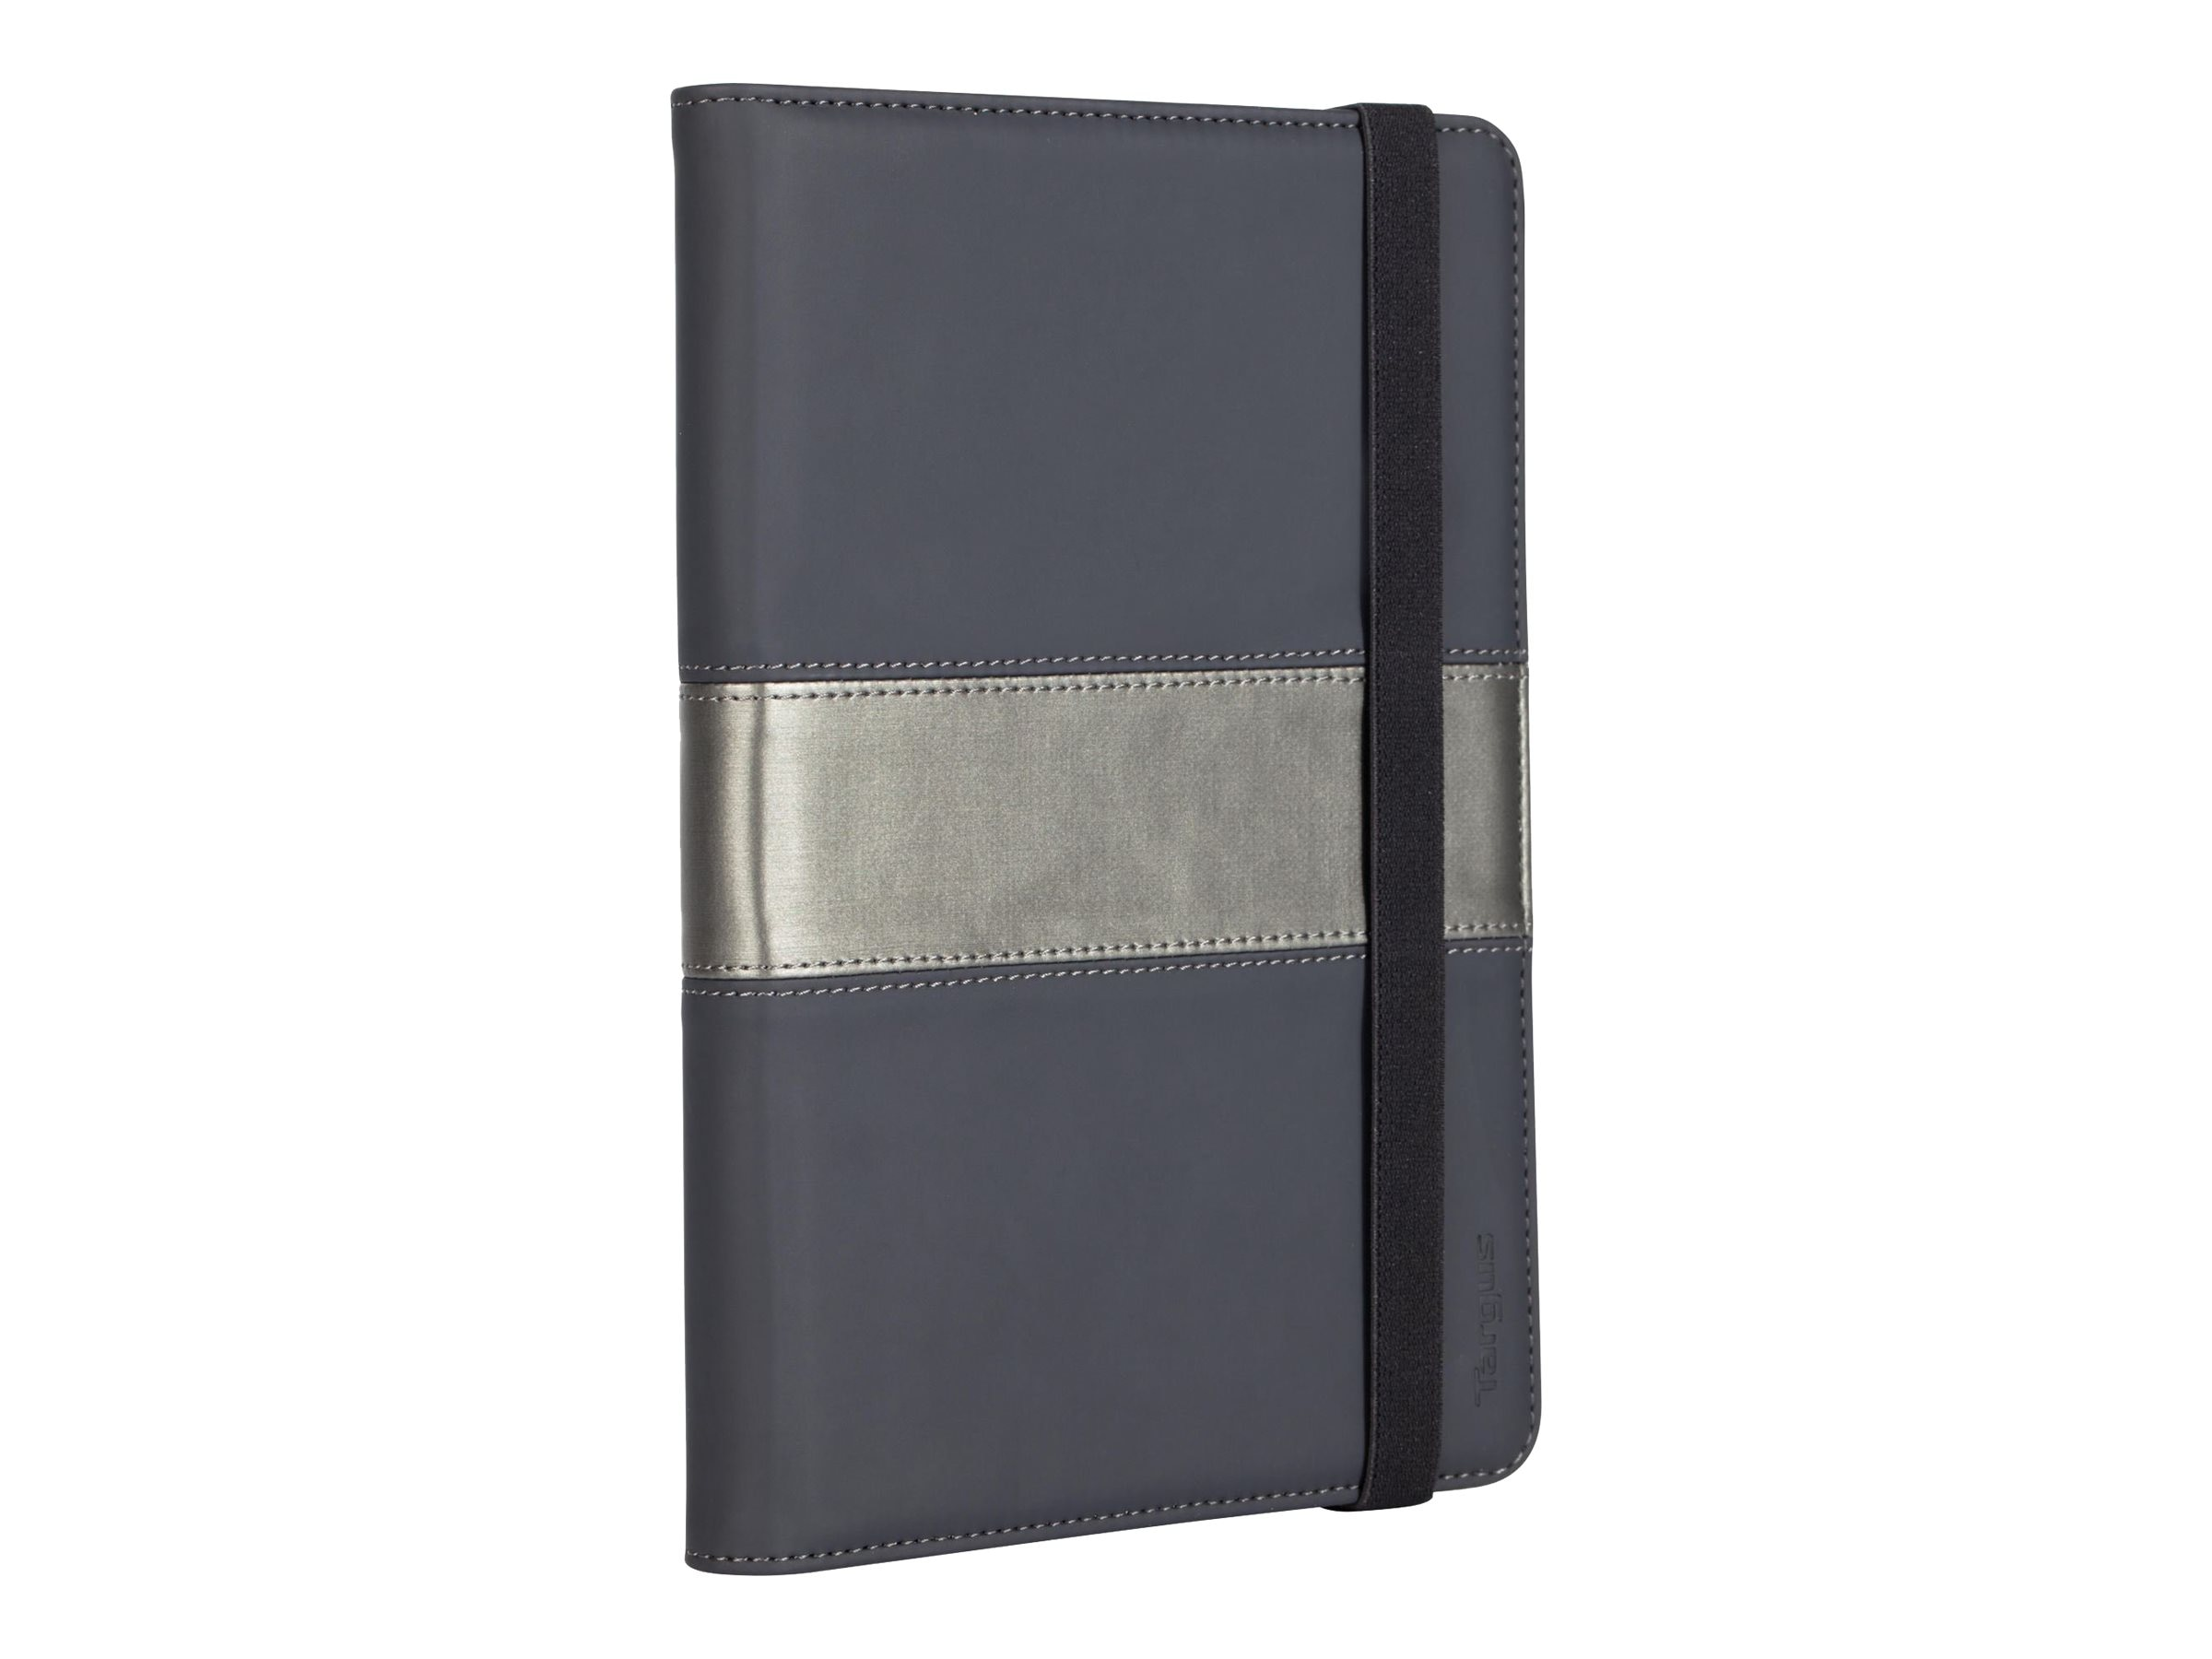 Targus Foliostand for iPad mini, Black Pewter